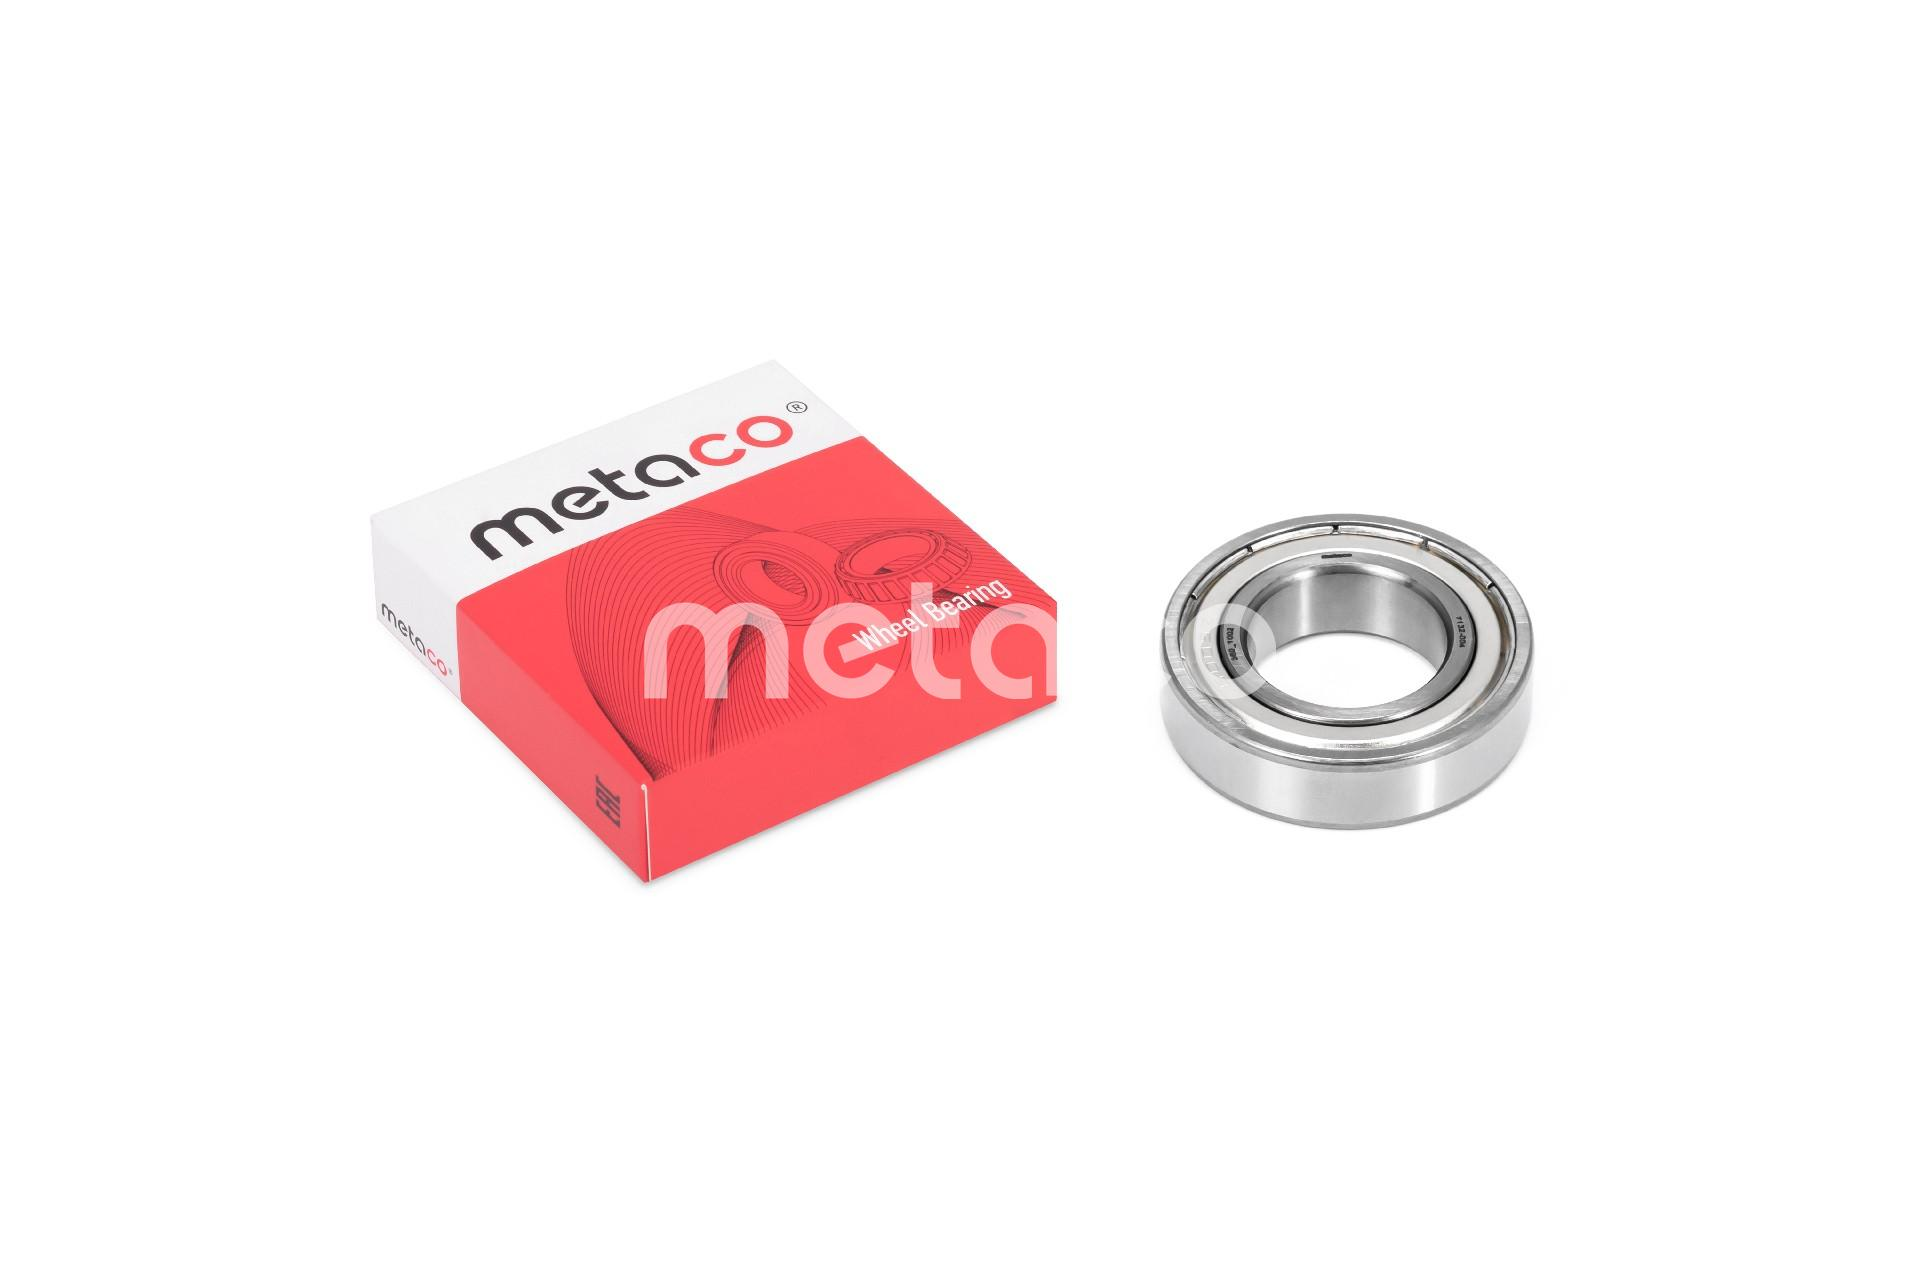 Metaco 7132-004 Mercedes Benz 2019810025